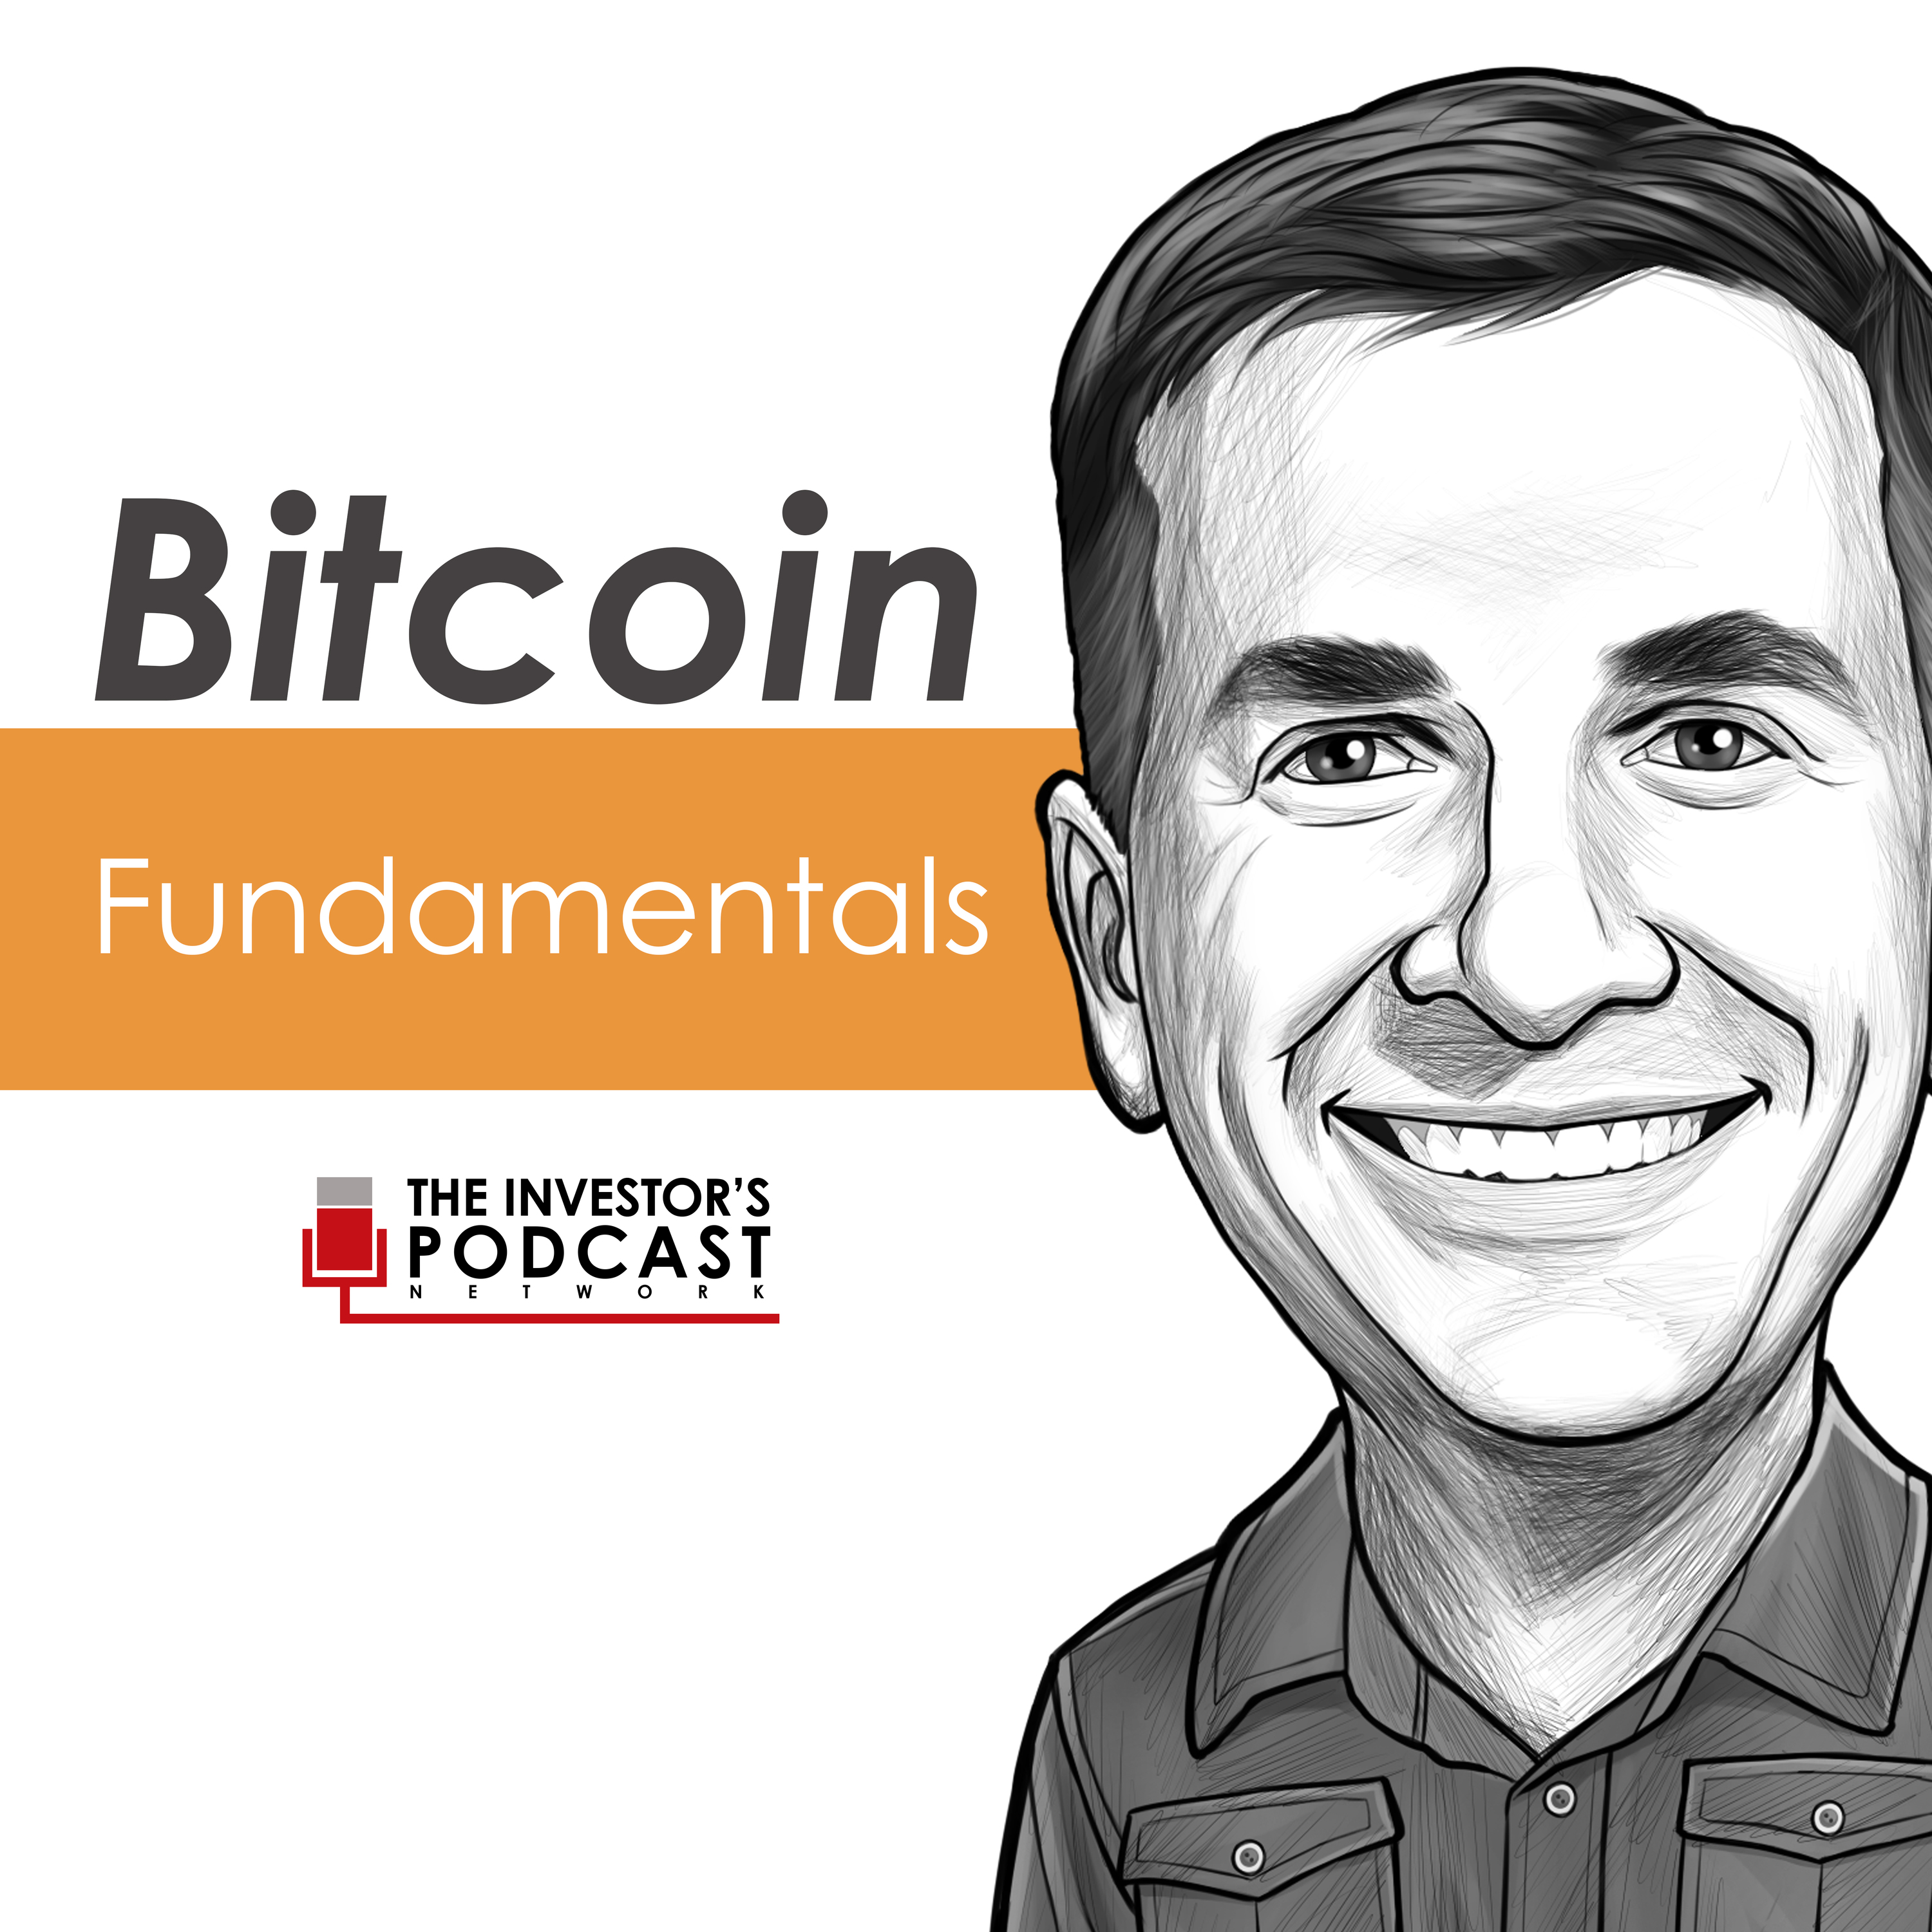 BTC040: Bitcoin ASIC Manufacturing By Blockstream w/ Dr. Adam Back and Samson Mow (Bitcoin Podcast)